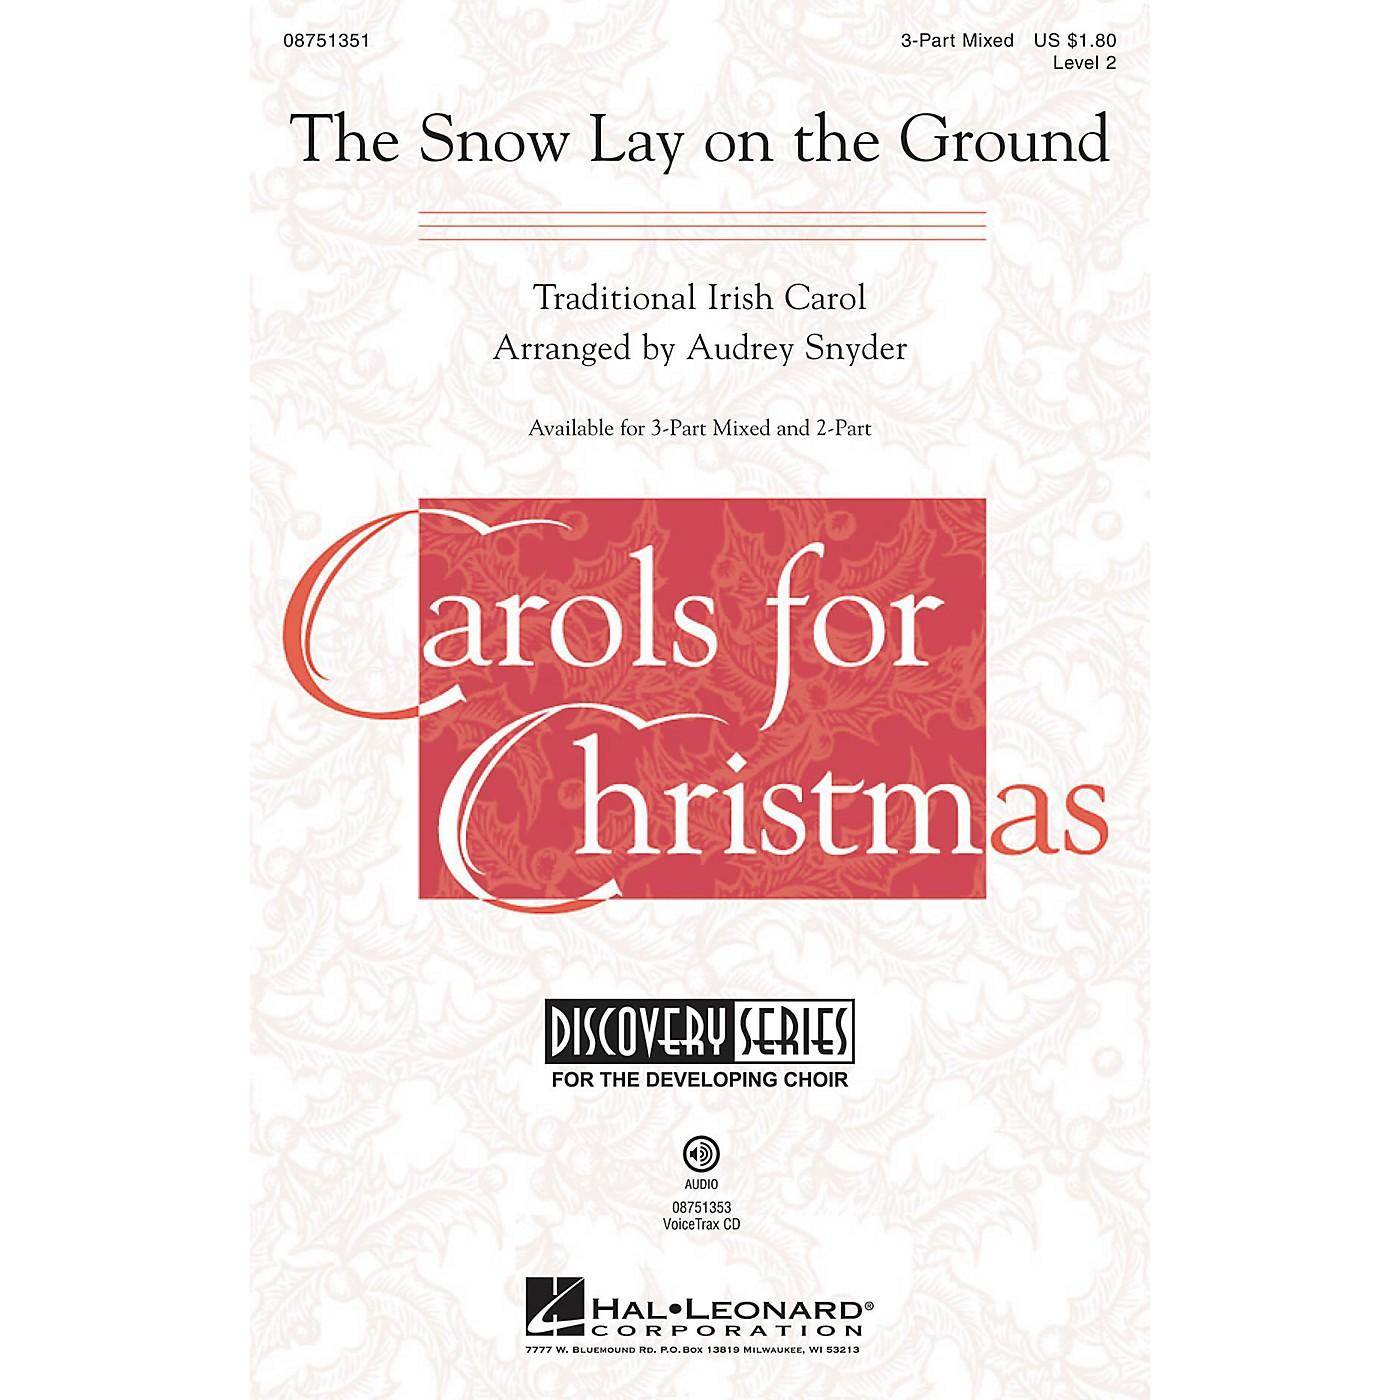 Hal Leonard The Snow Lay on the Ground (Discovery Level 2) VoiceTrax CD Arranged by Audrey Snyder thumbnail